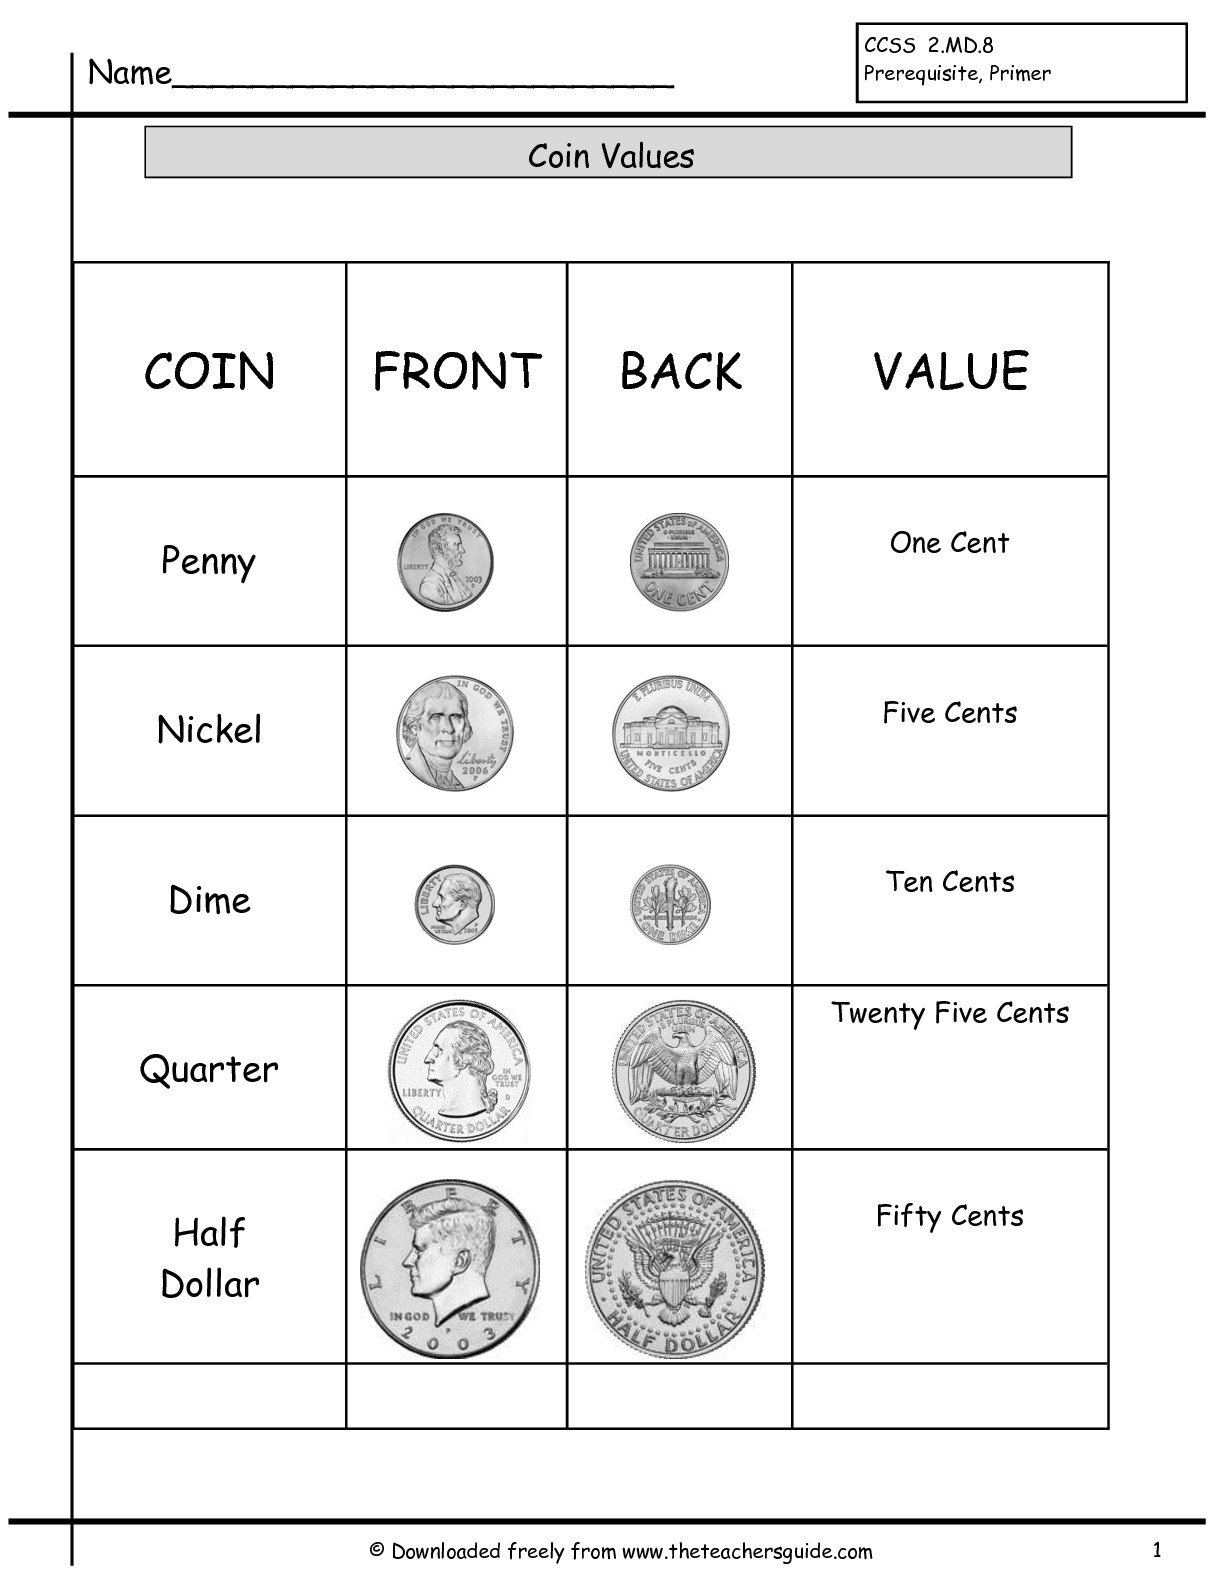 Coins And Values Worksheets The Best Worksheets Image Collection